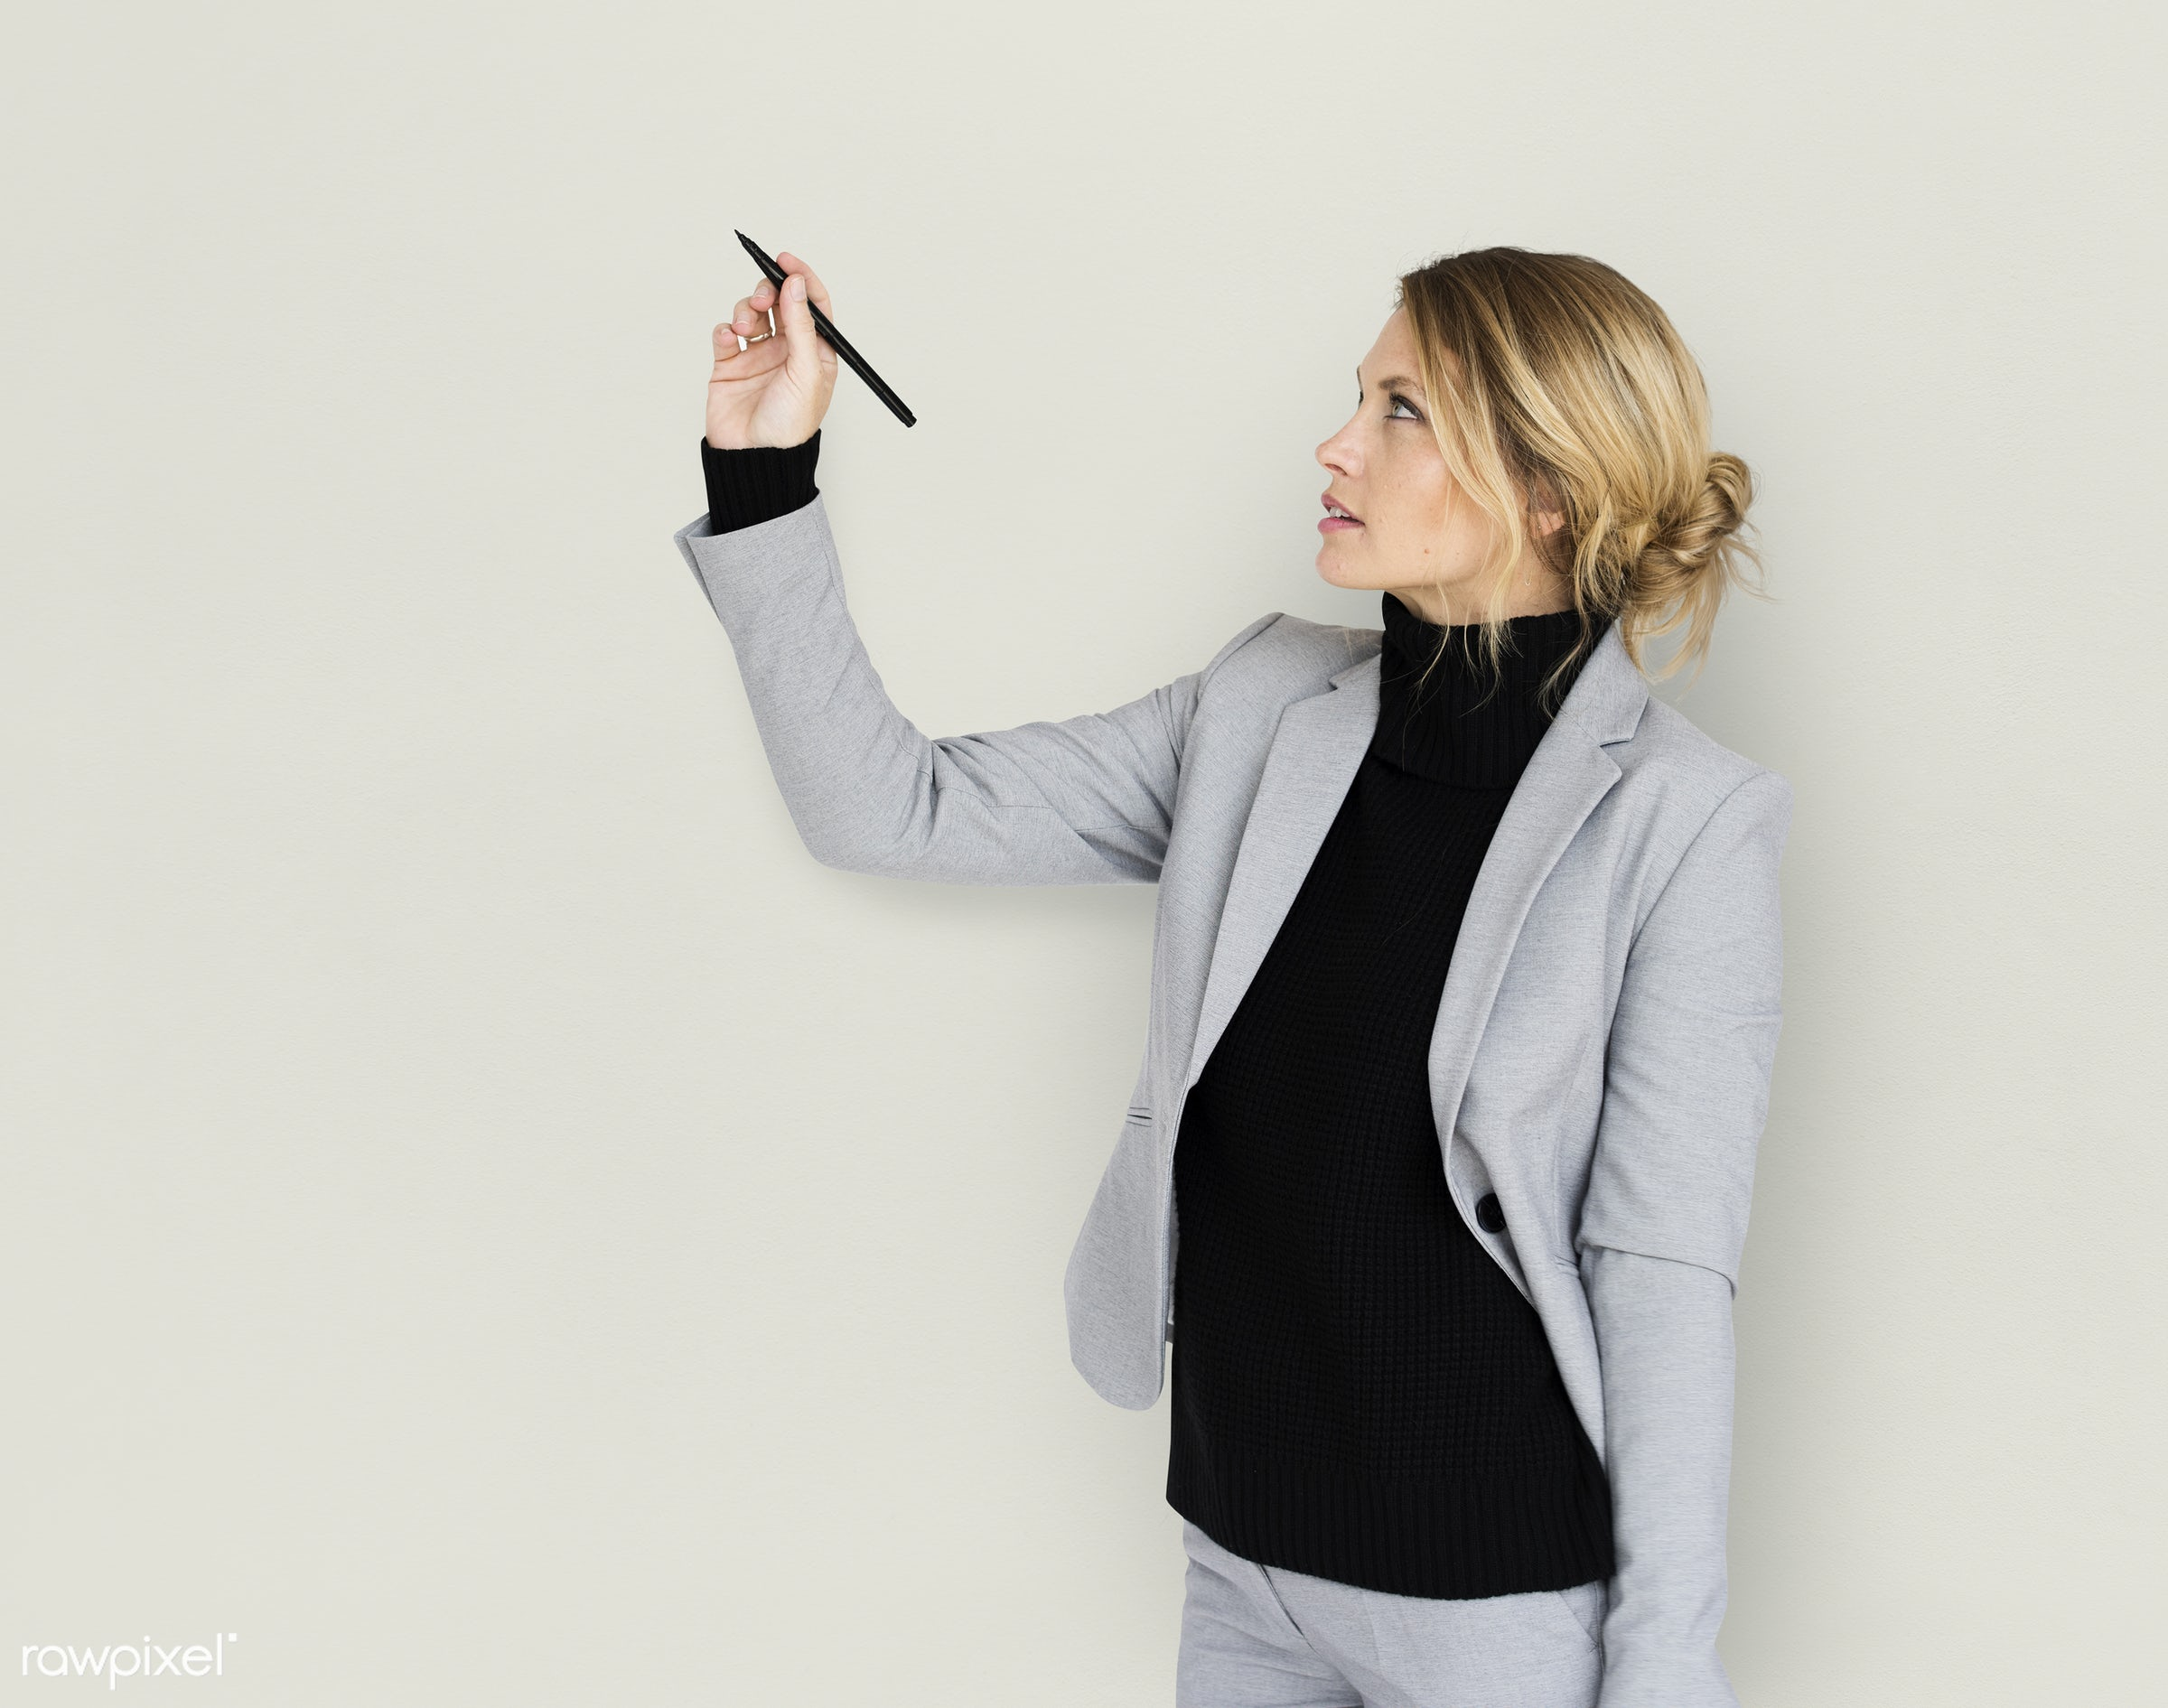 Businesswoman drawing with a pen - expression, studio, lecture, person, business wear, holding pen, writing, concentrating,...